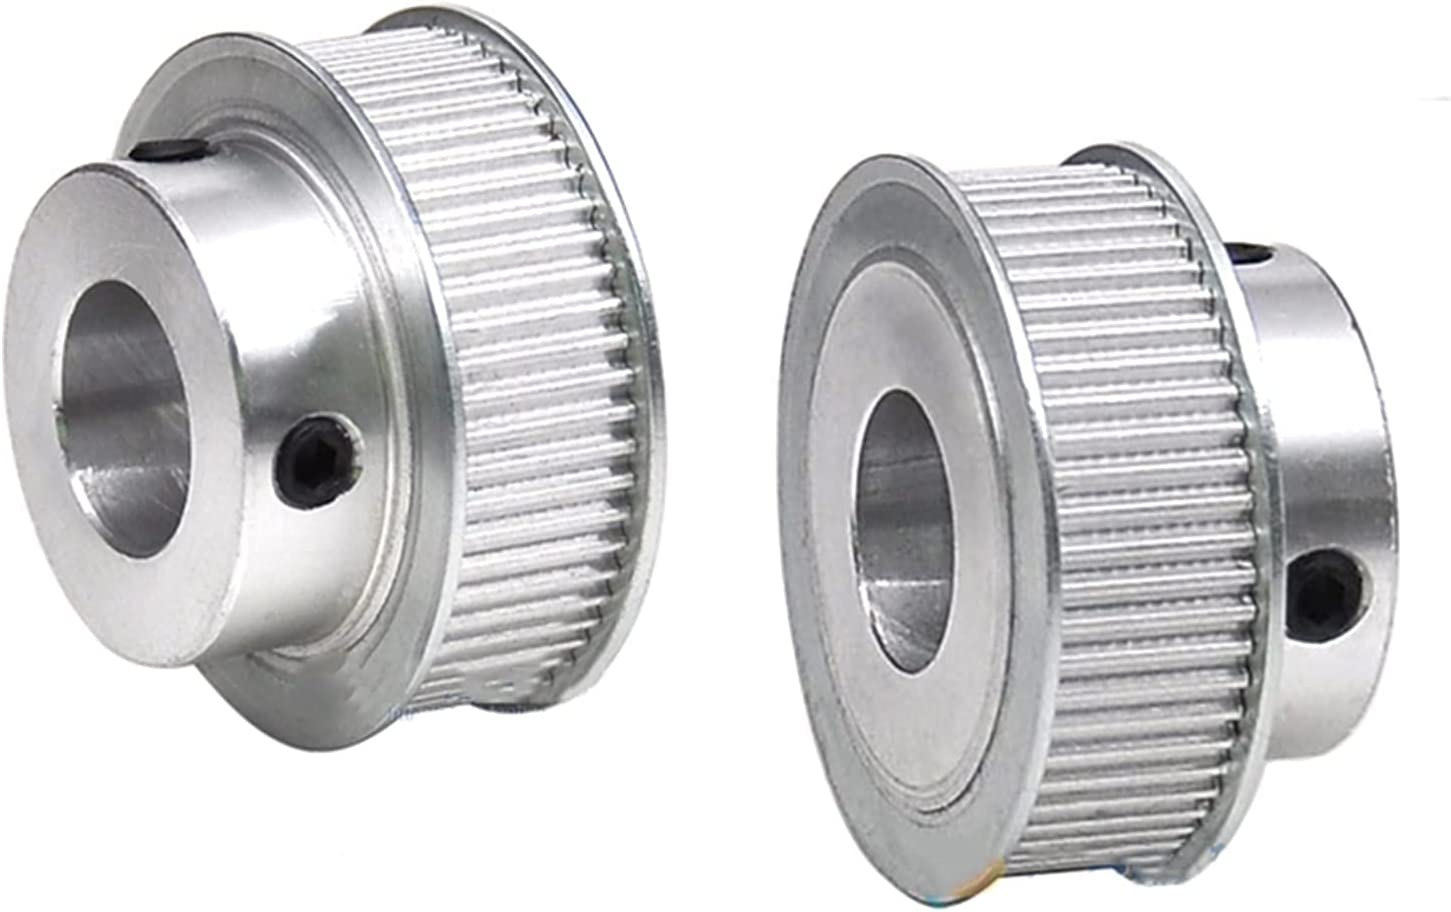 Rapid rise Time sale Pulleys 1Pcs 2GT Timing Pulley 70 Tooth Co Aluminum To 100